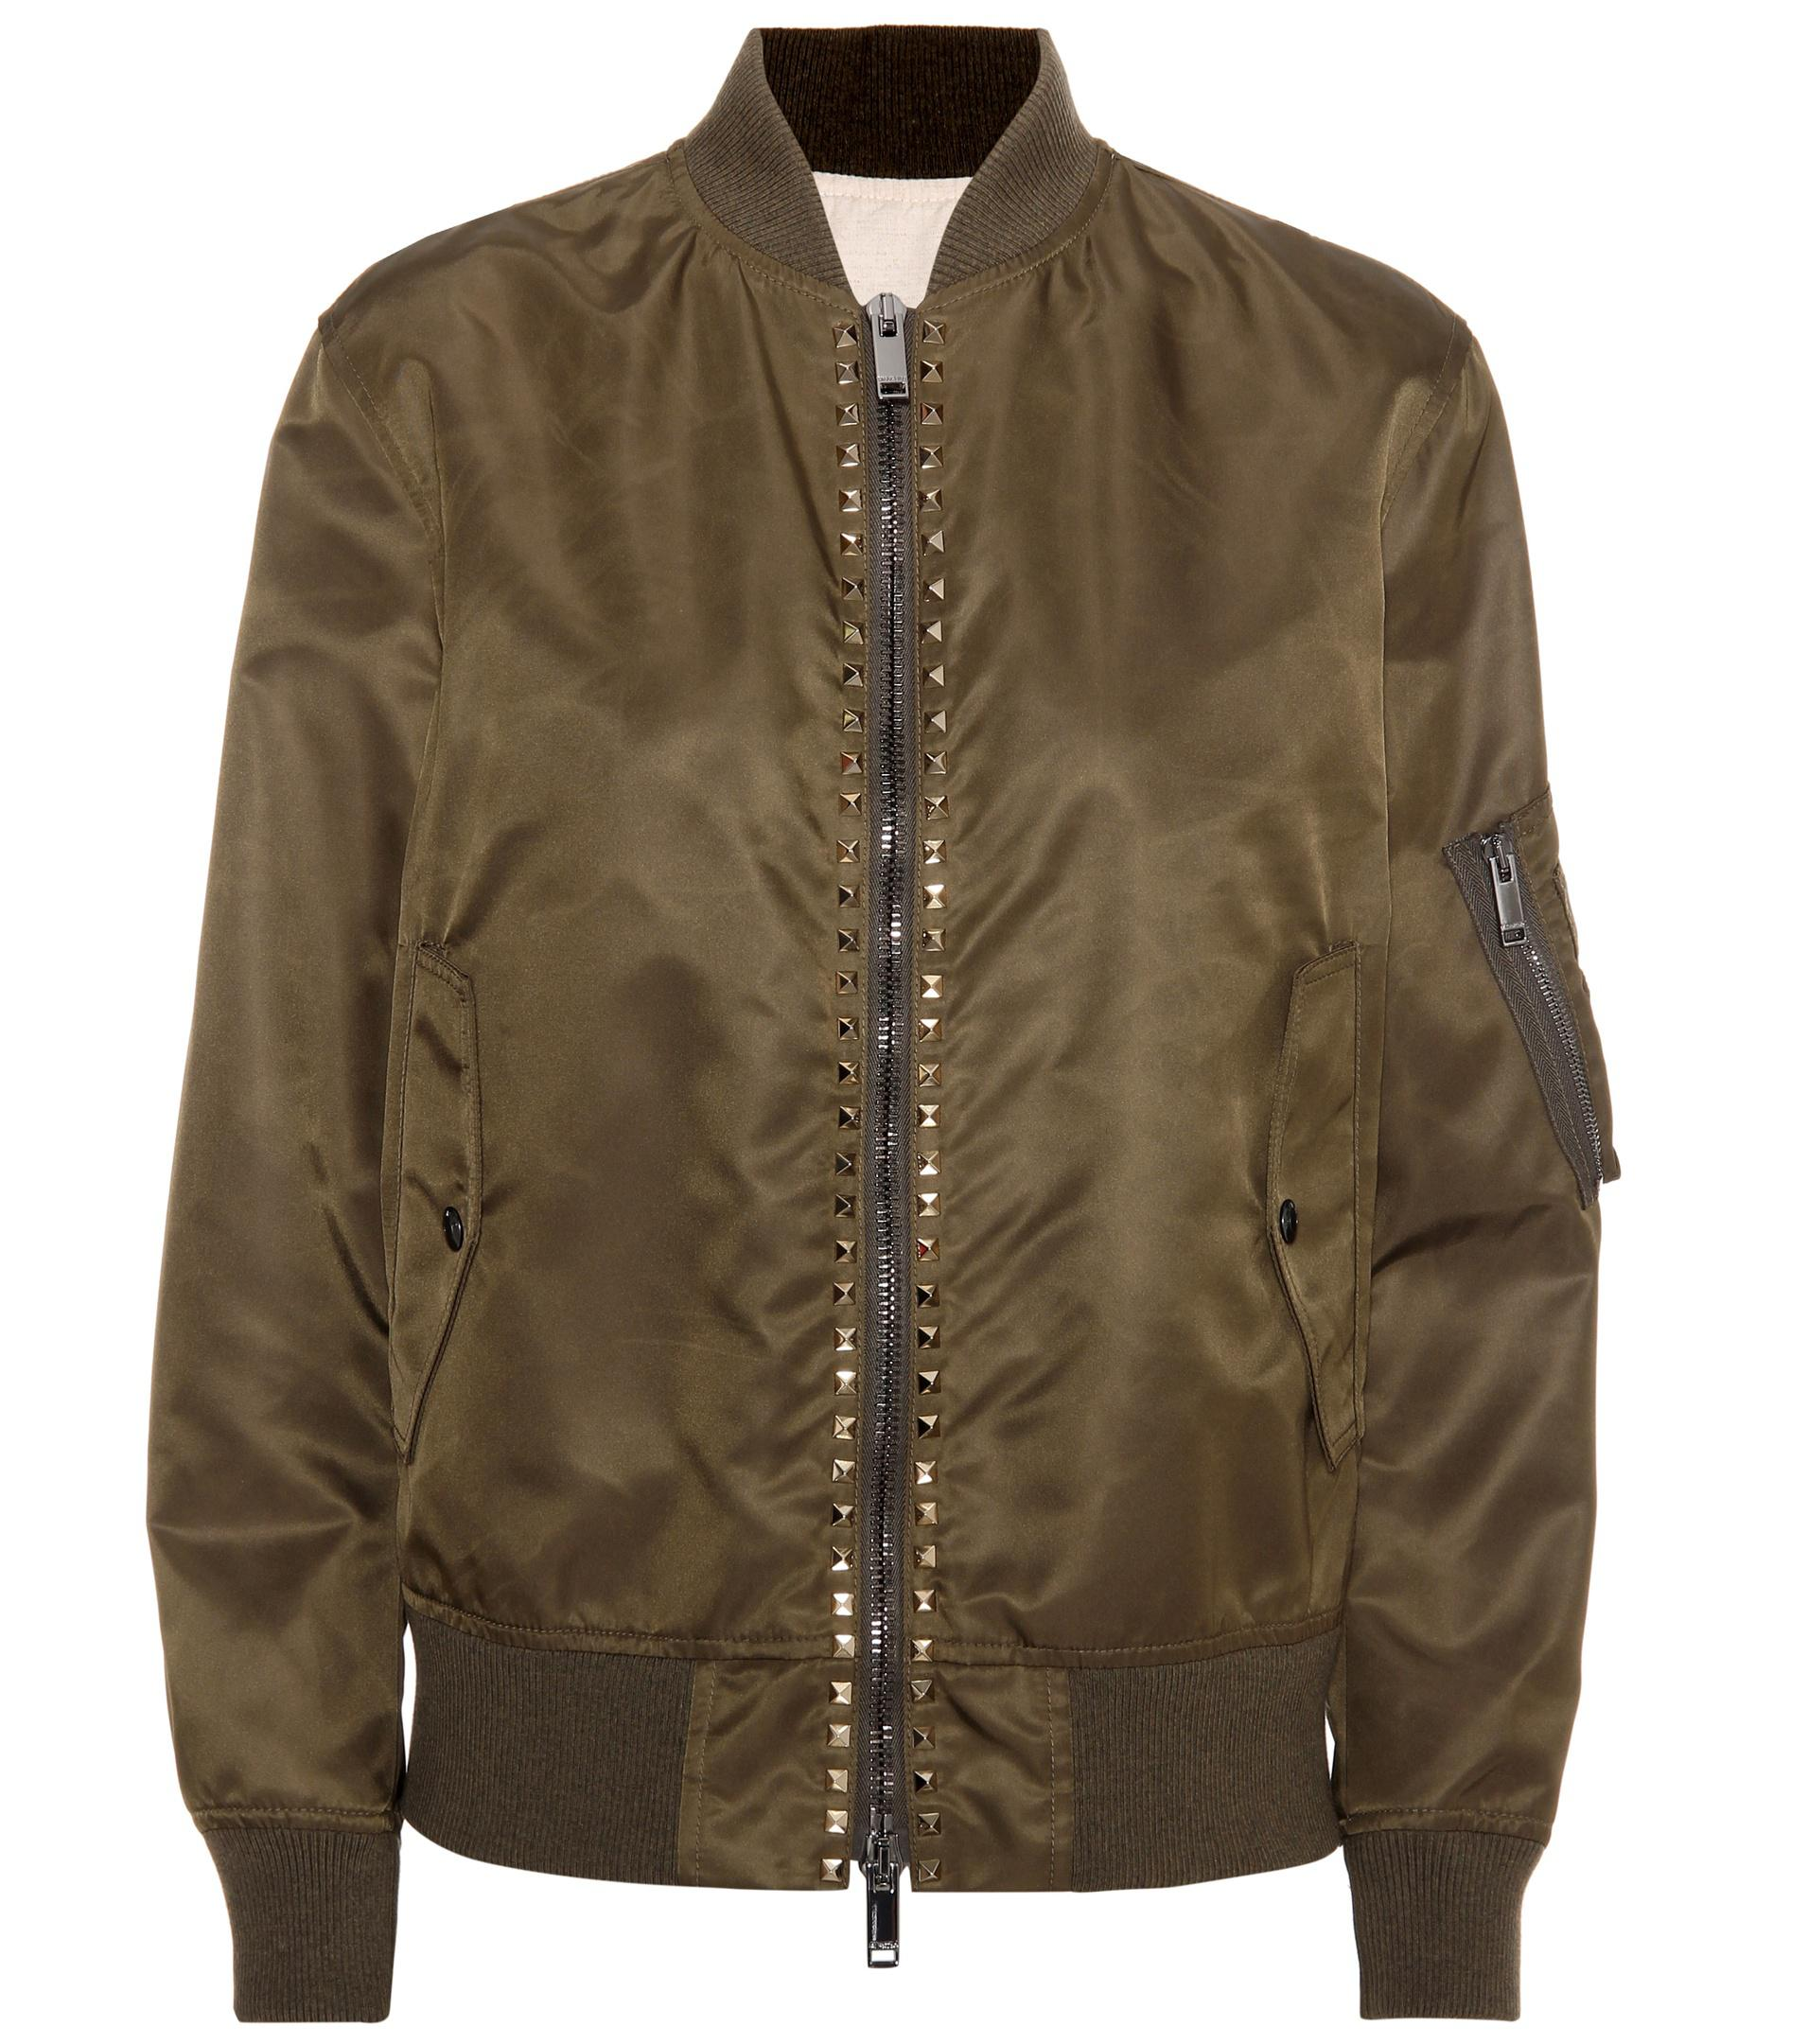 d03051bb76 Lyst - Valentino Rockstud Untitled Bomber Jacket in Green - Save 30.0%